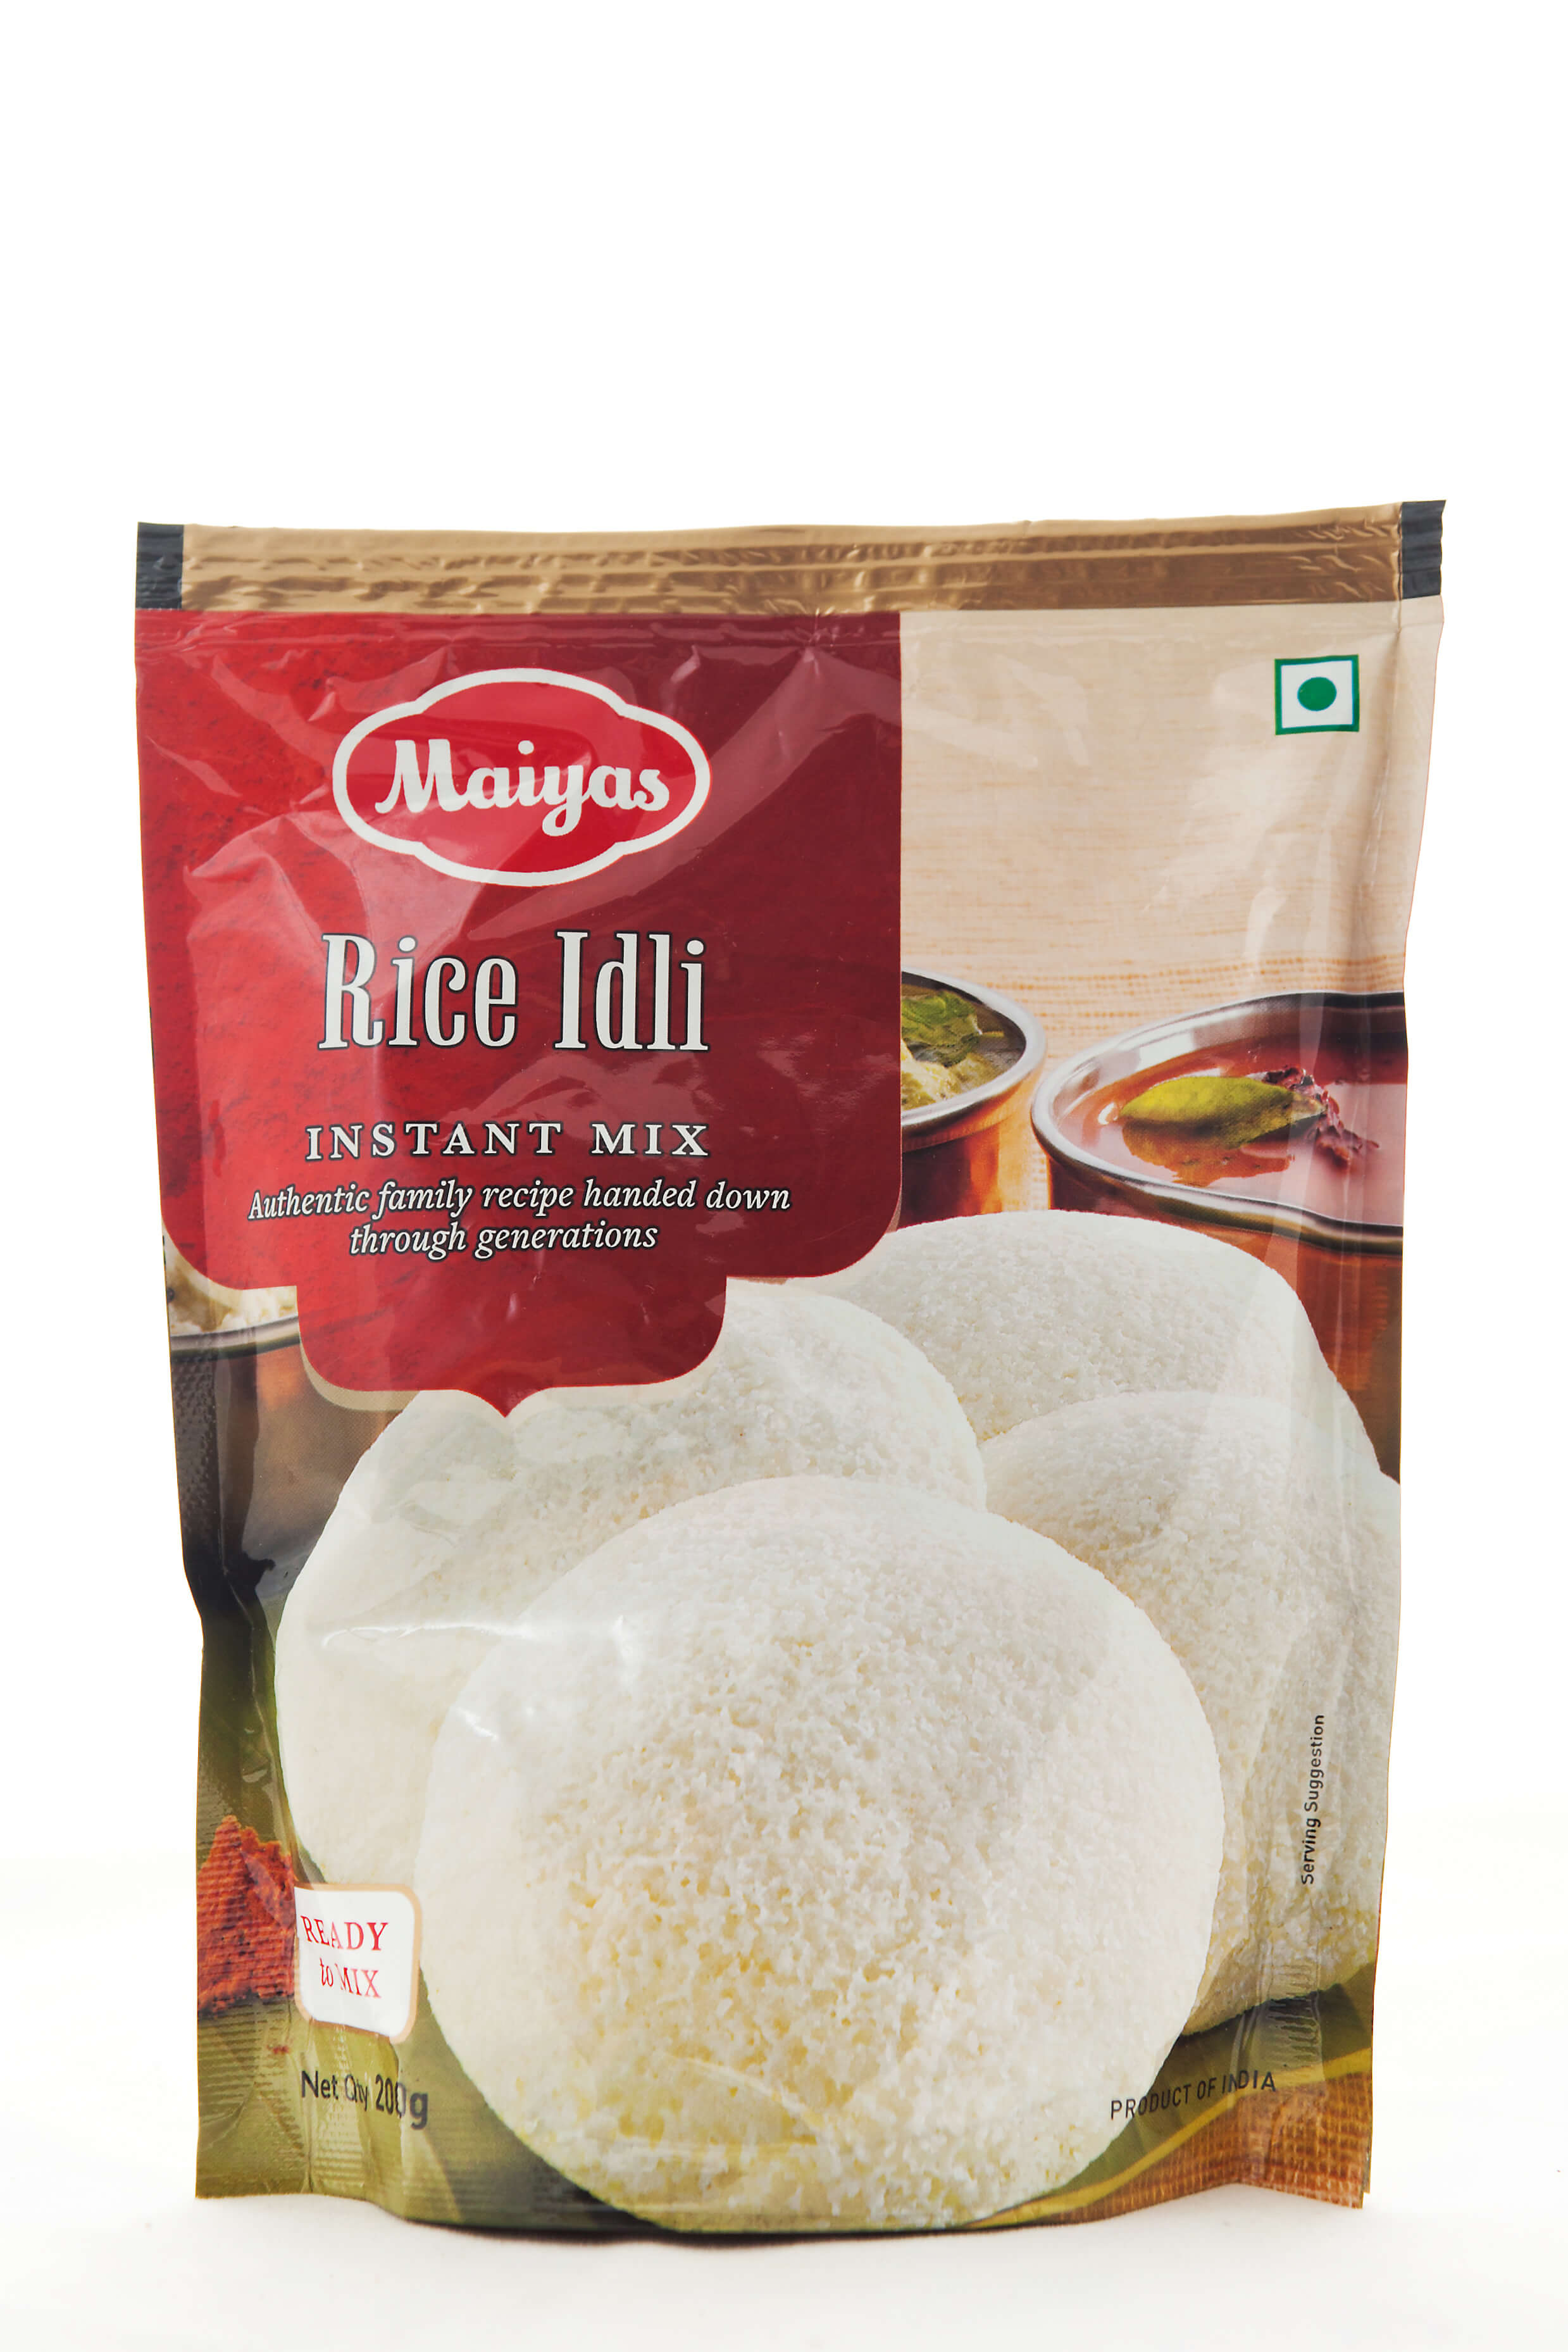 RICE IDLI MIX 200g/РАЙС ИДЛИ МИКС 200 г